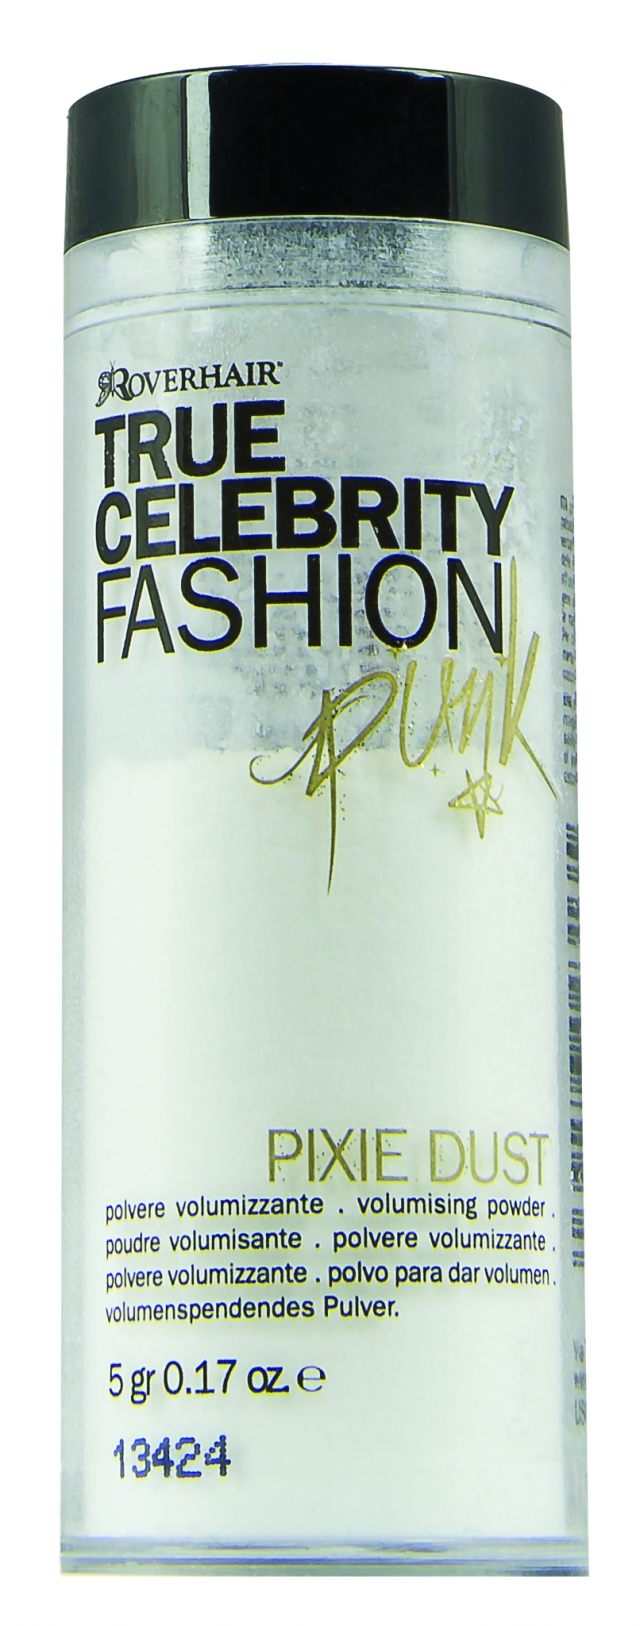 True Celebrity Fashion Punk Pixie Dust (volumizing powder) Image